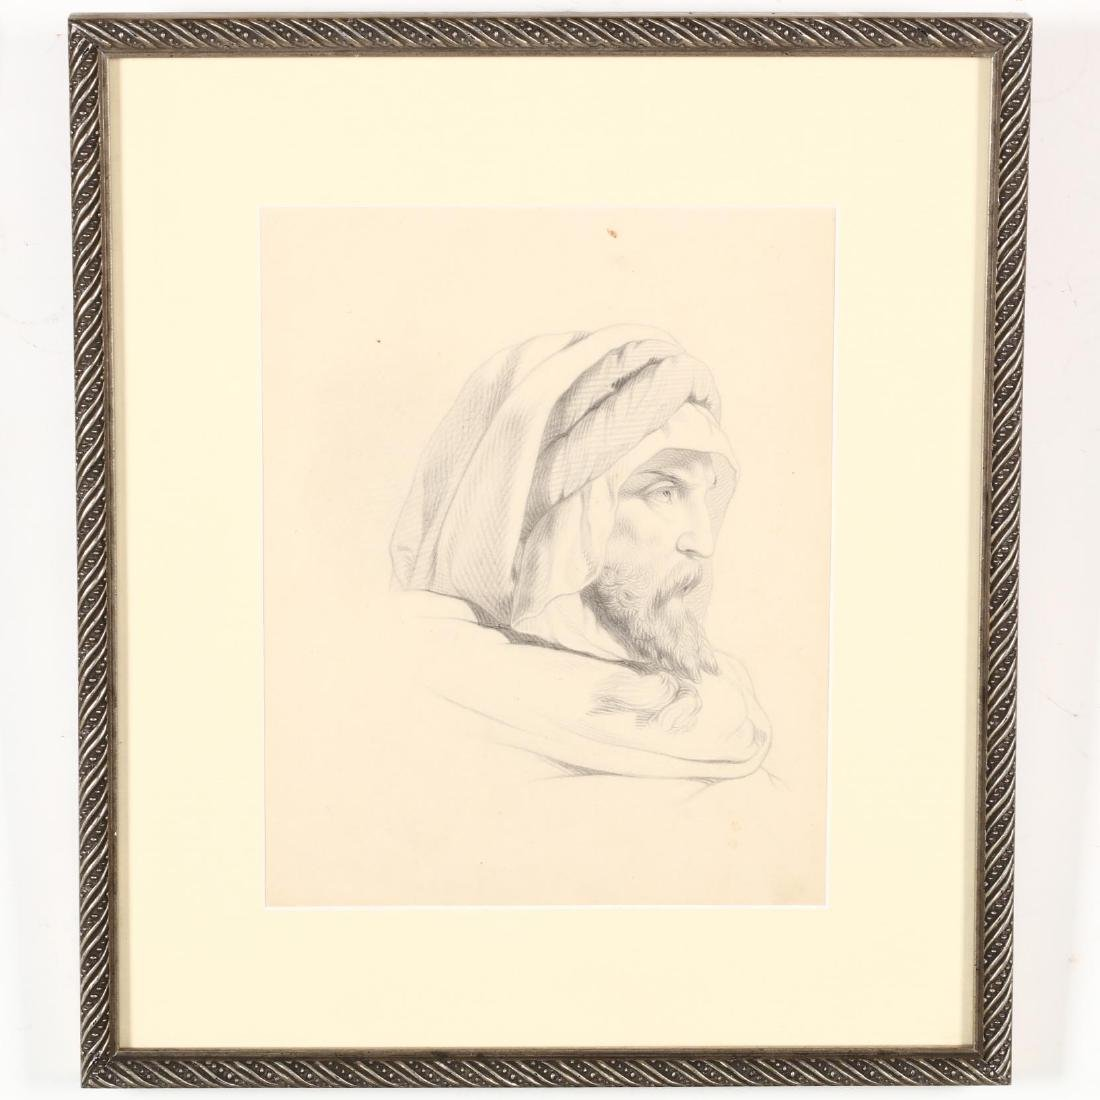 Peter Calvi, Jr. (NY, 1860-1926), Five Sketches of Men - 5